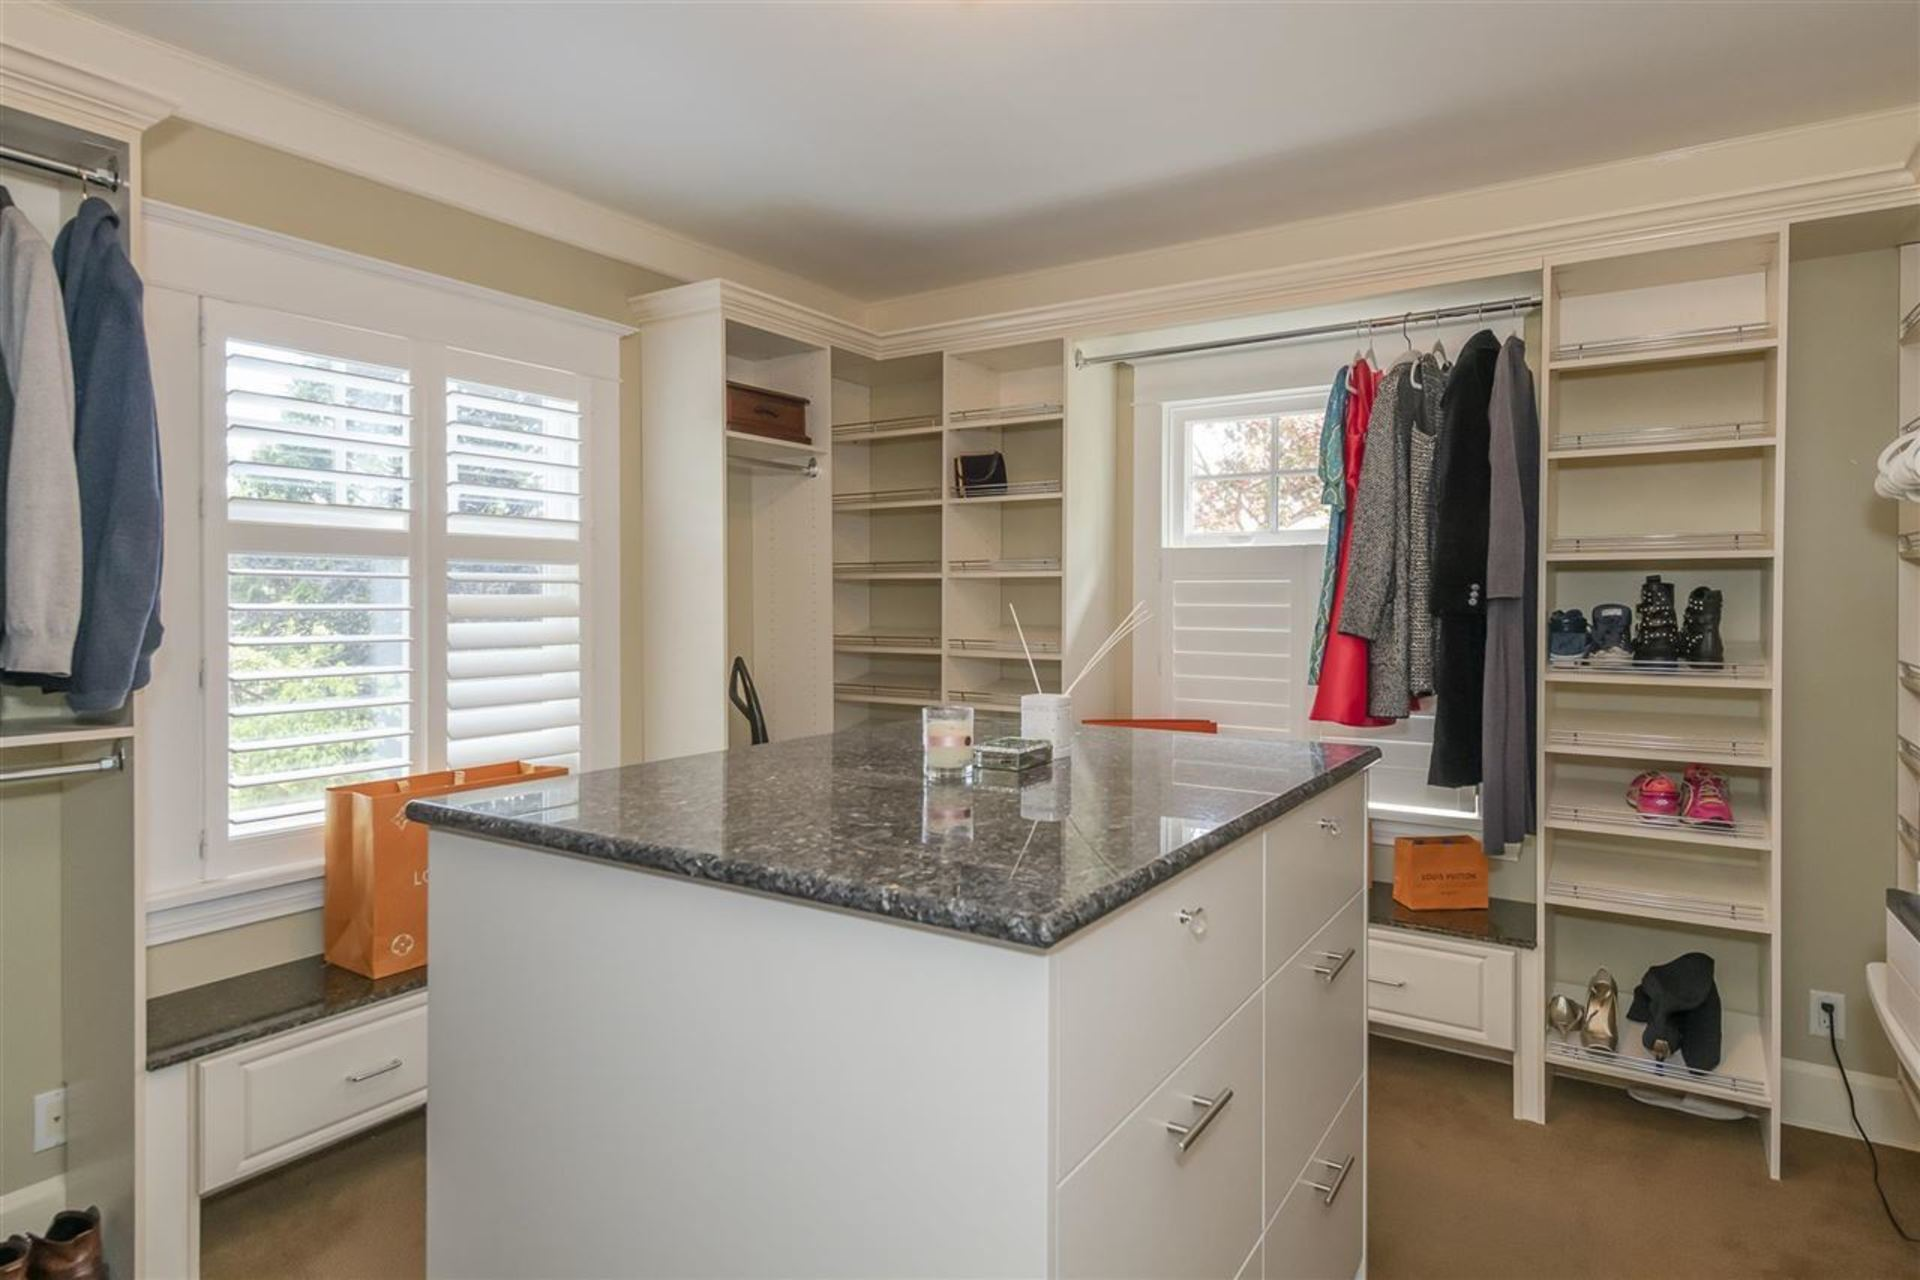 1432-w-45th-avenue-south-granville-vancouver-west-11 at 1432 W 45th Avenue, South Granville, Vancouver West